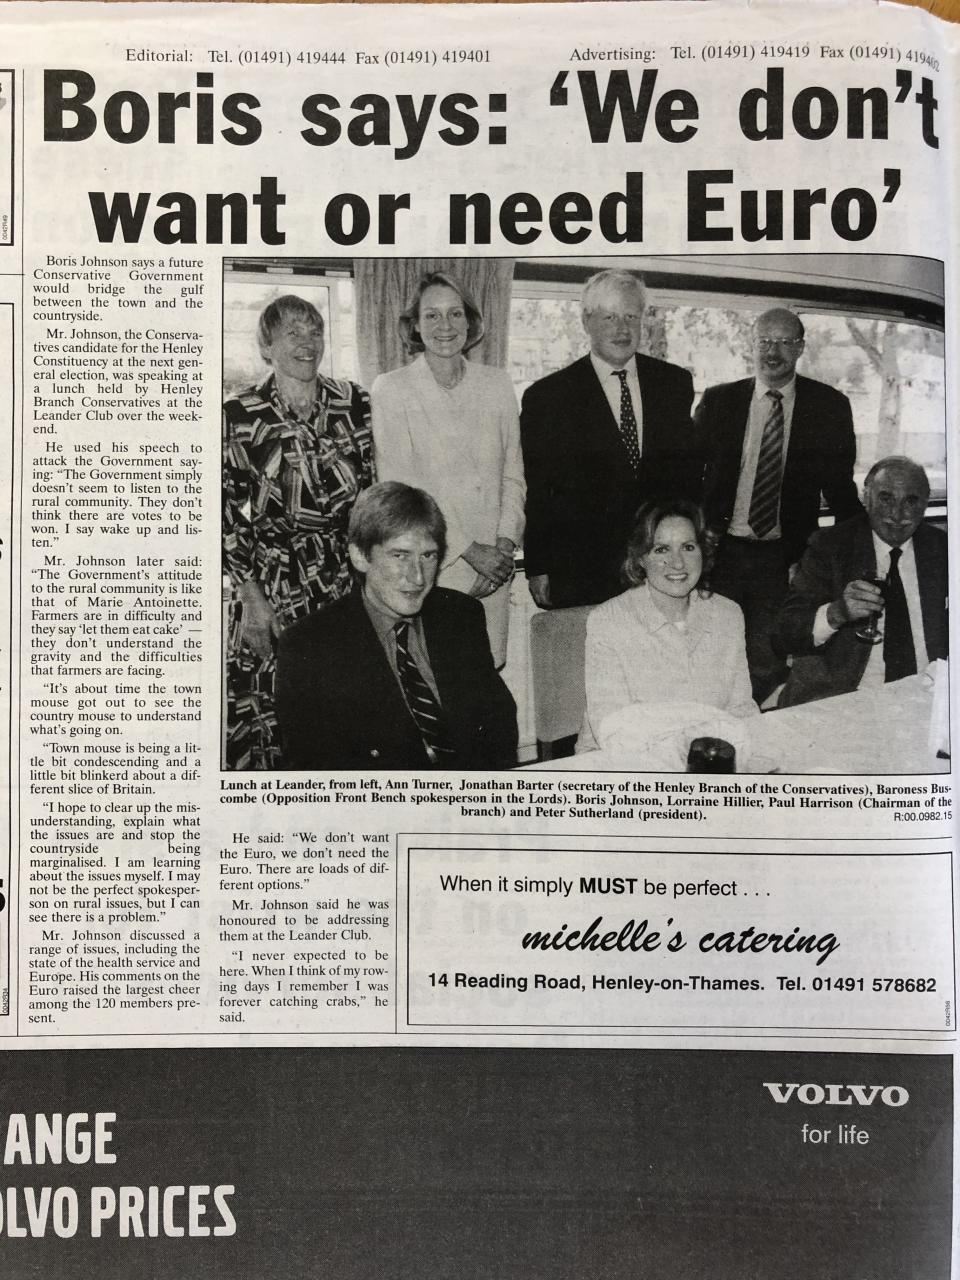 A report on Boris Johnson campaigning against the Euro in Henley in 2000 (Henley Standard/Henley Library)